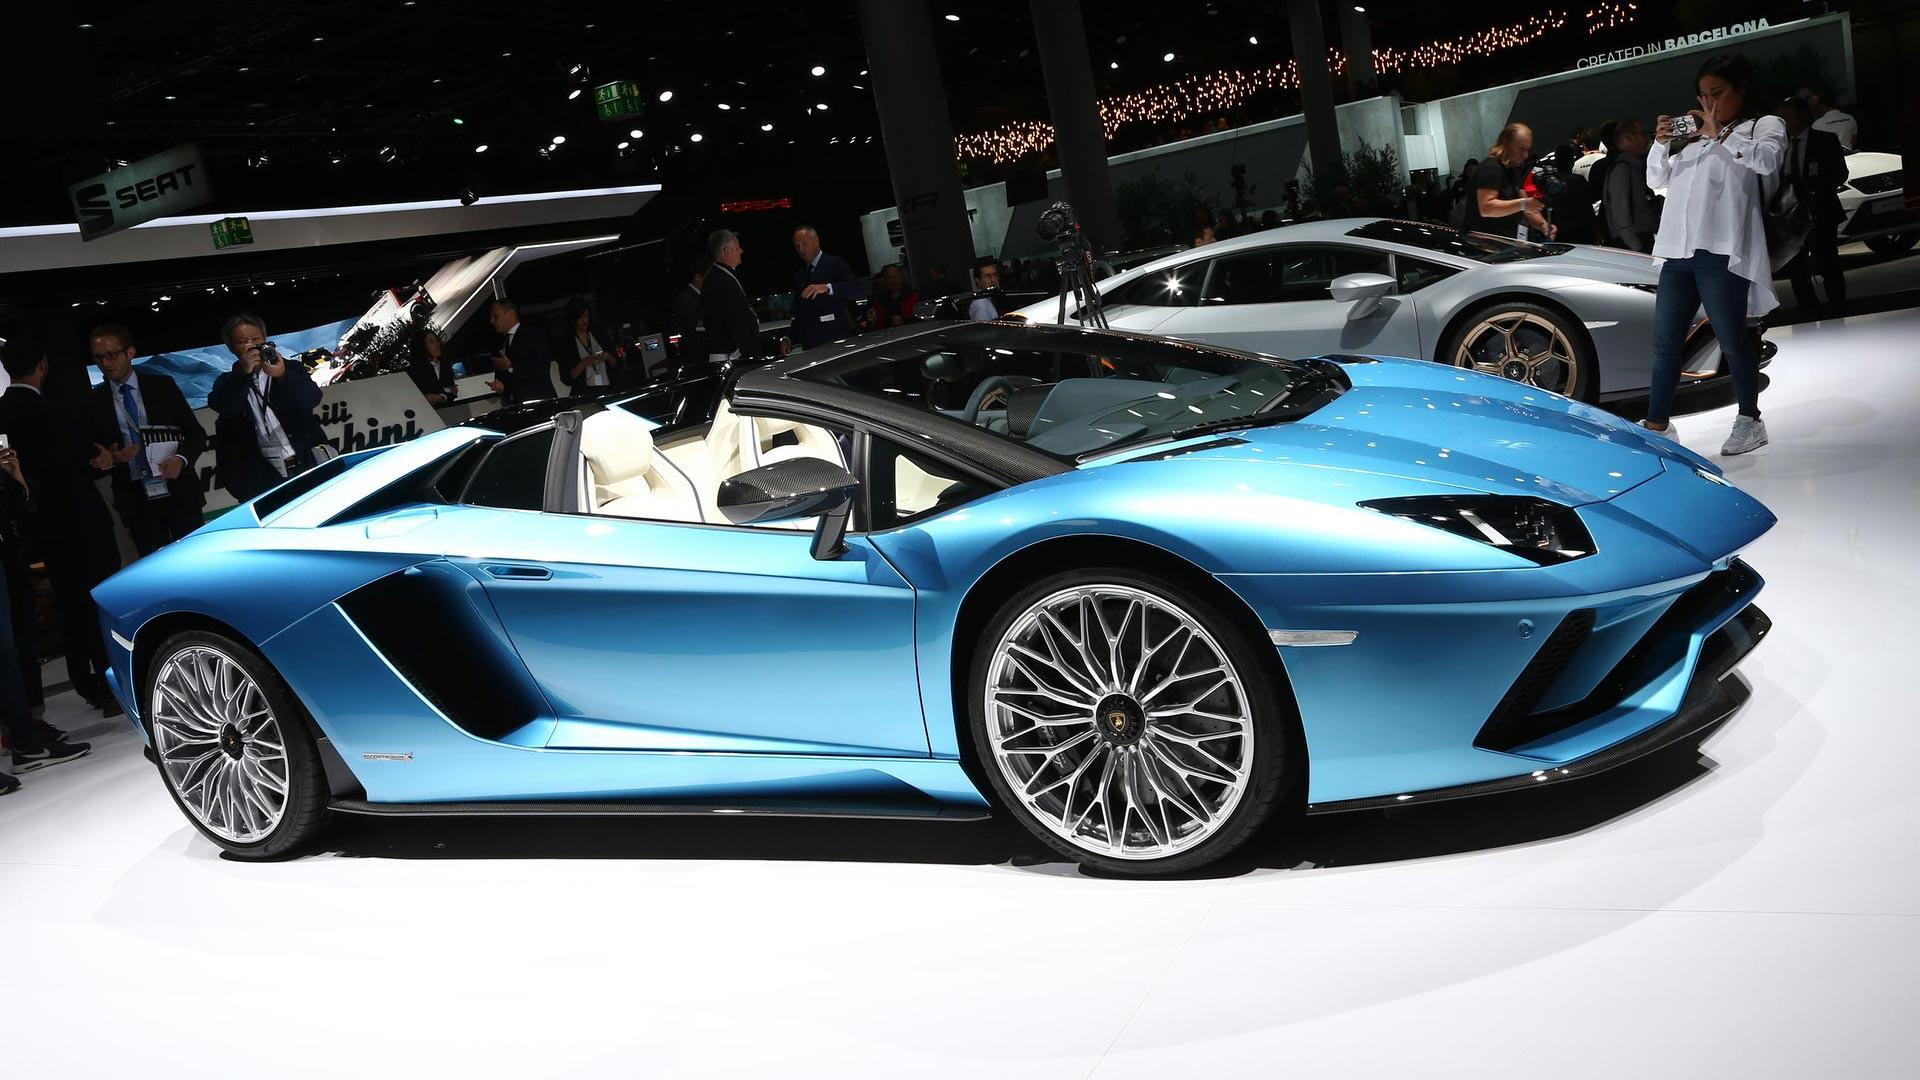 Lamborghini Aventador S Roadster Loses Its Roof In Frankfurt